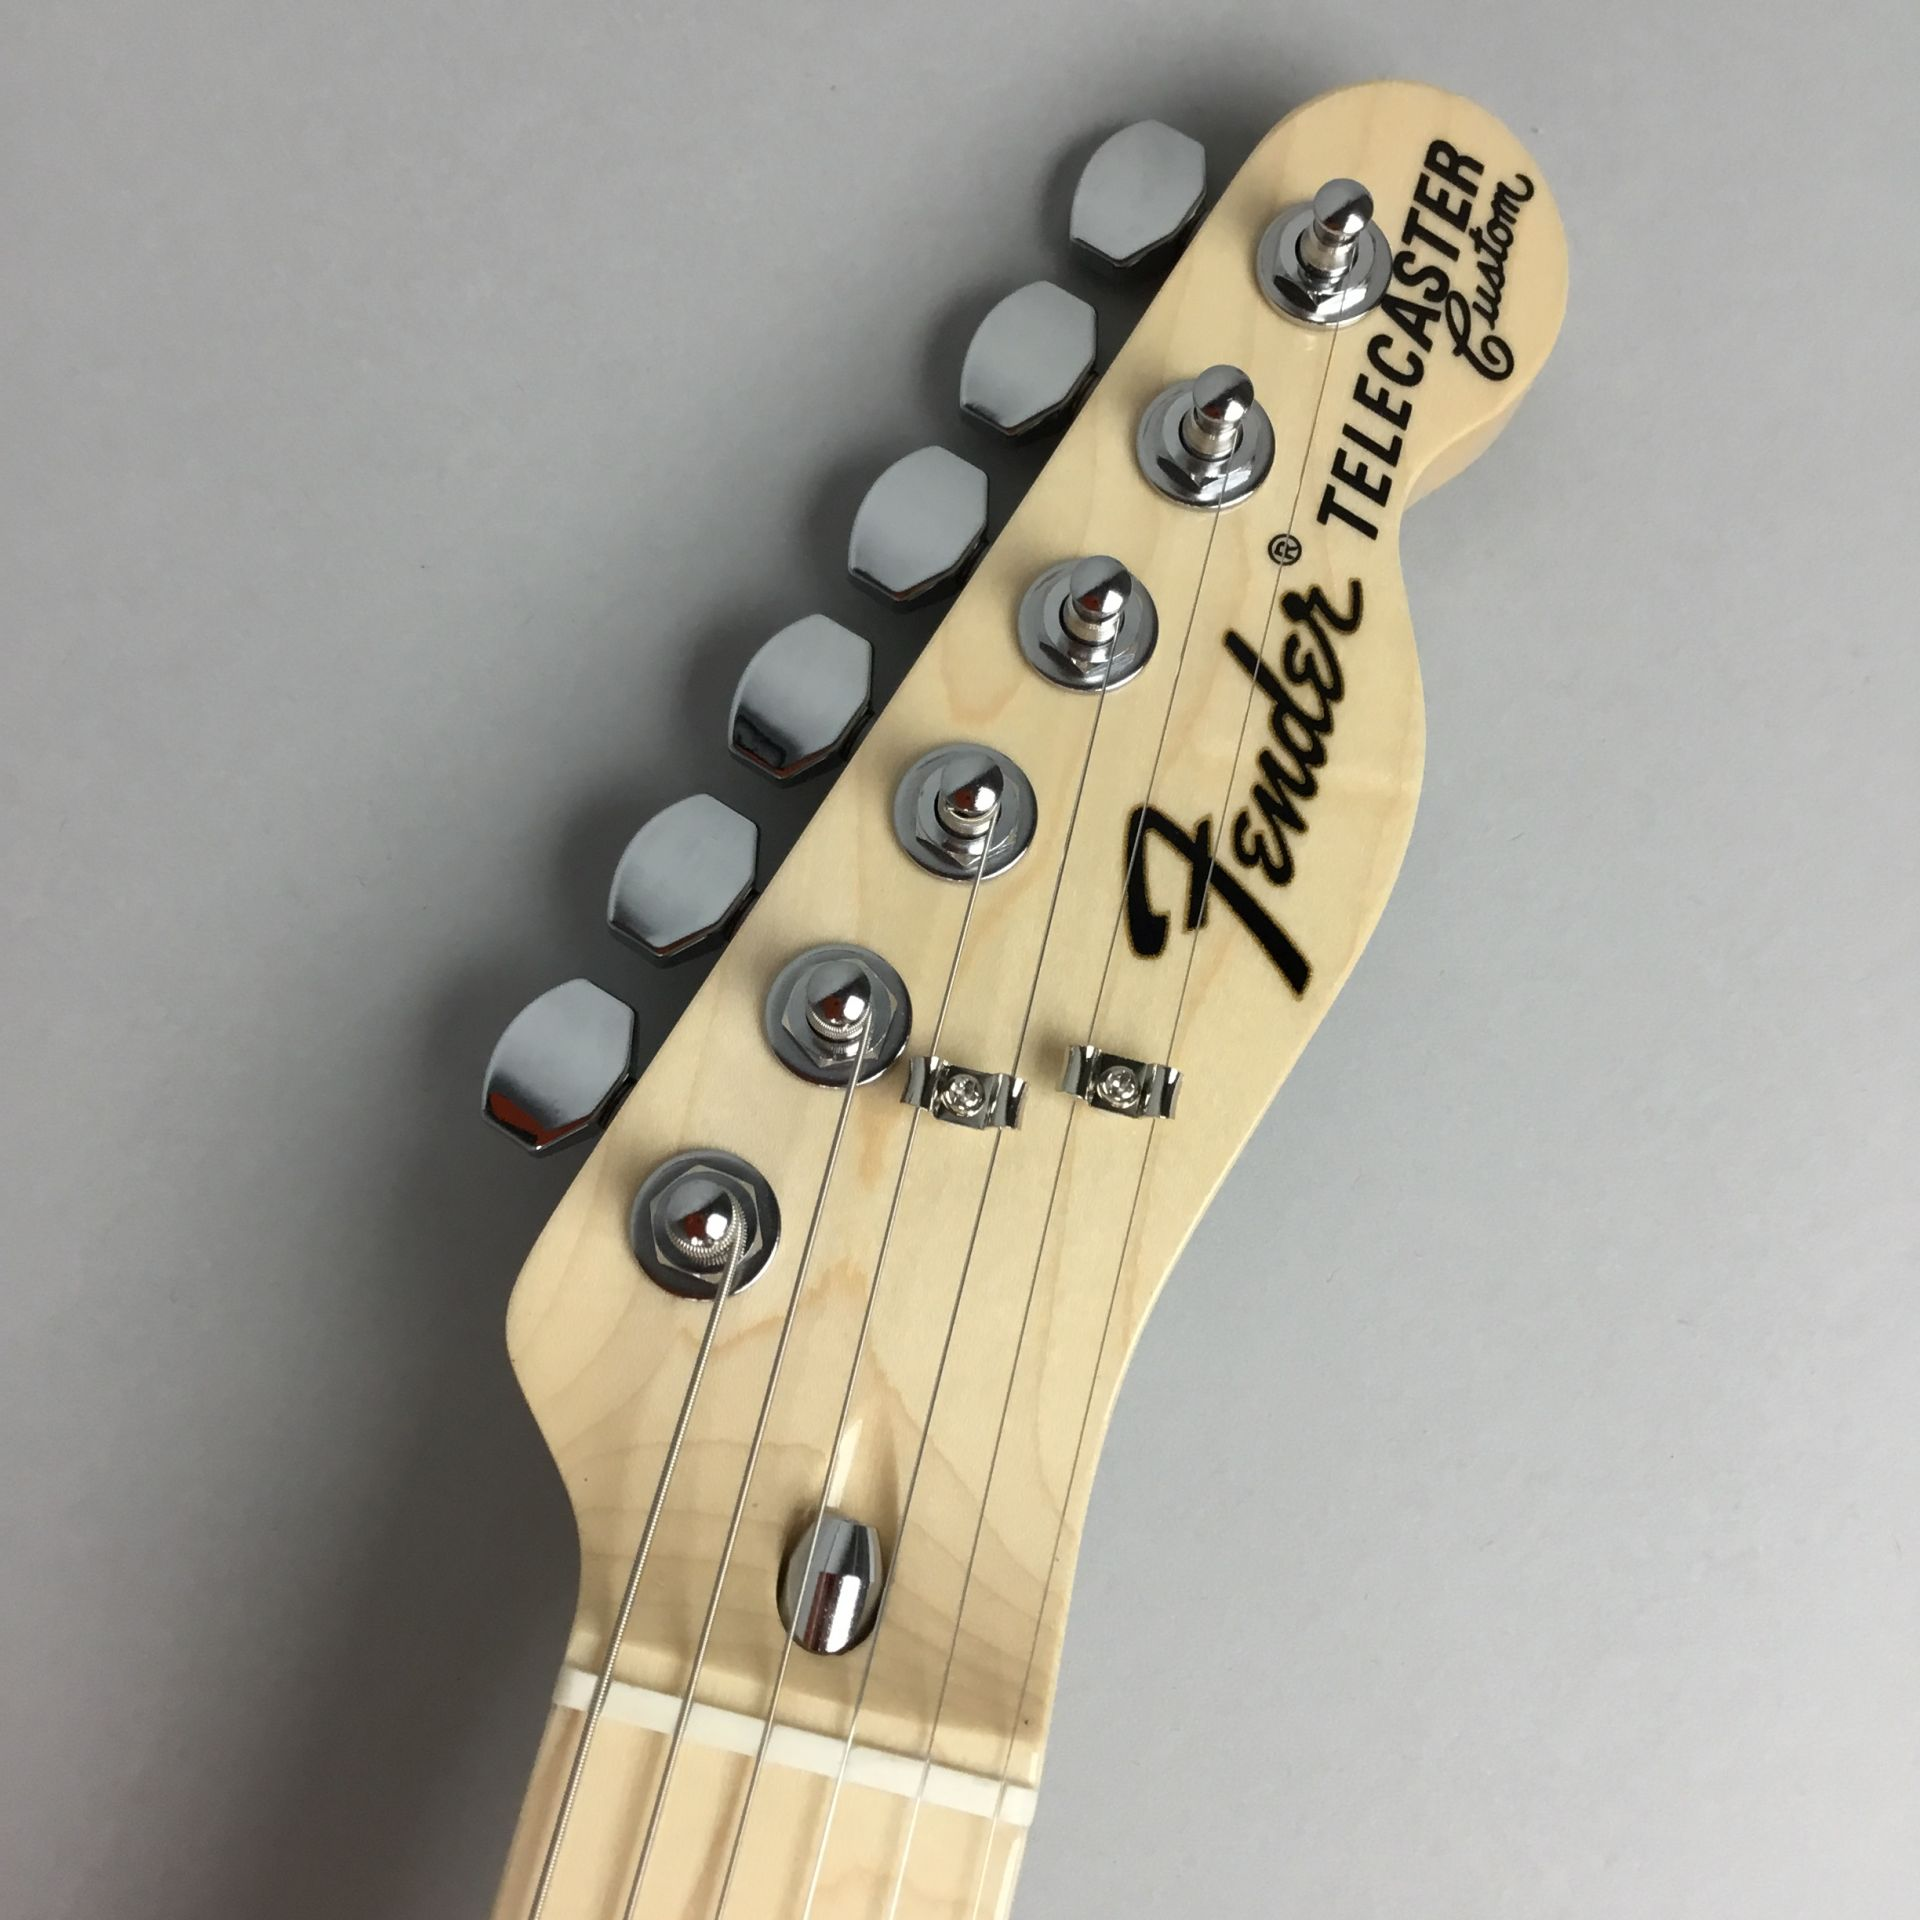 MADE IN JAPAN TRADITIONAL 70S TELECASTER® CUSTOMのヘッド画像